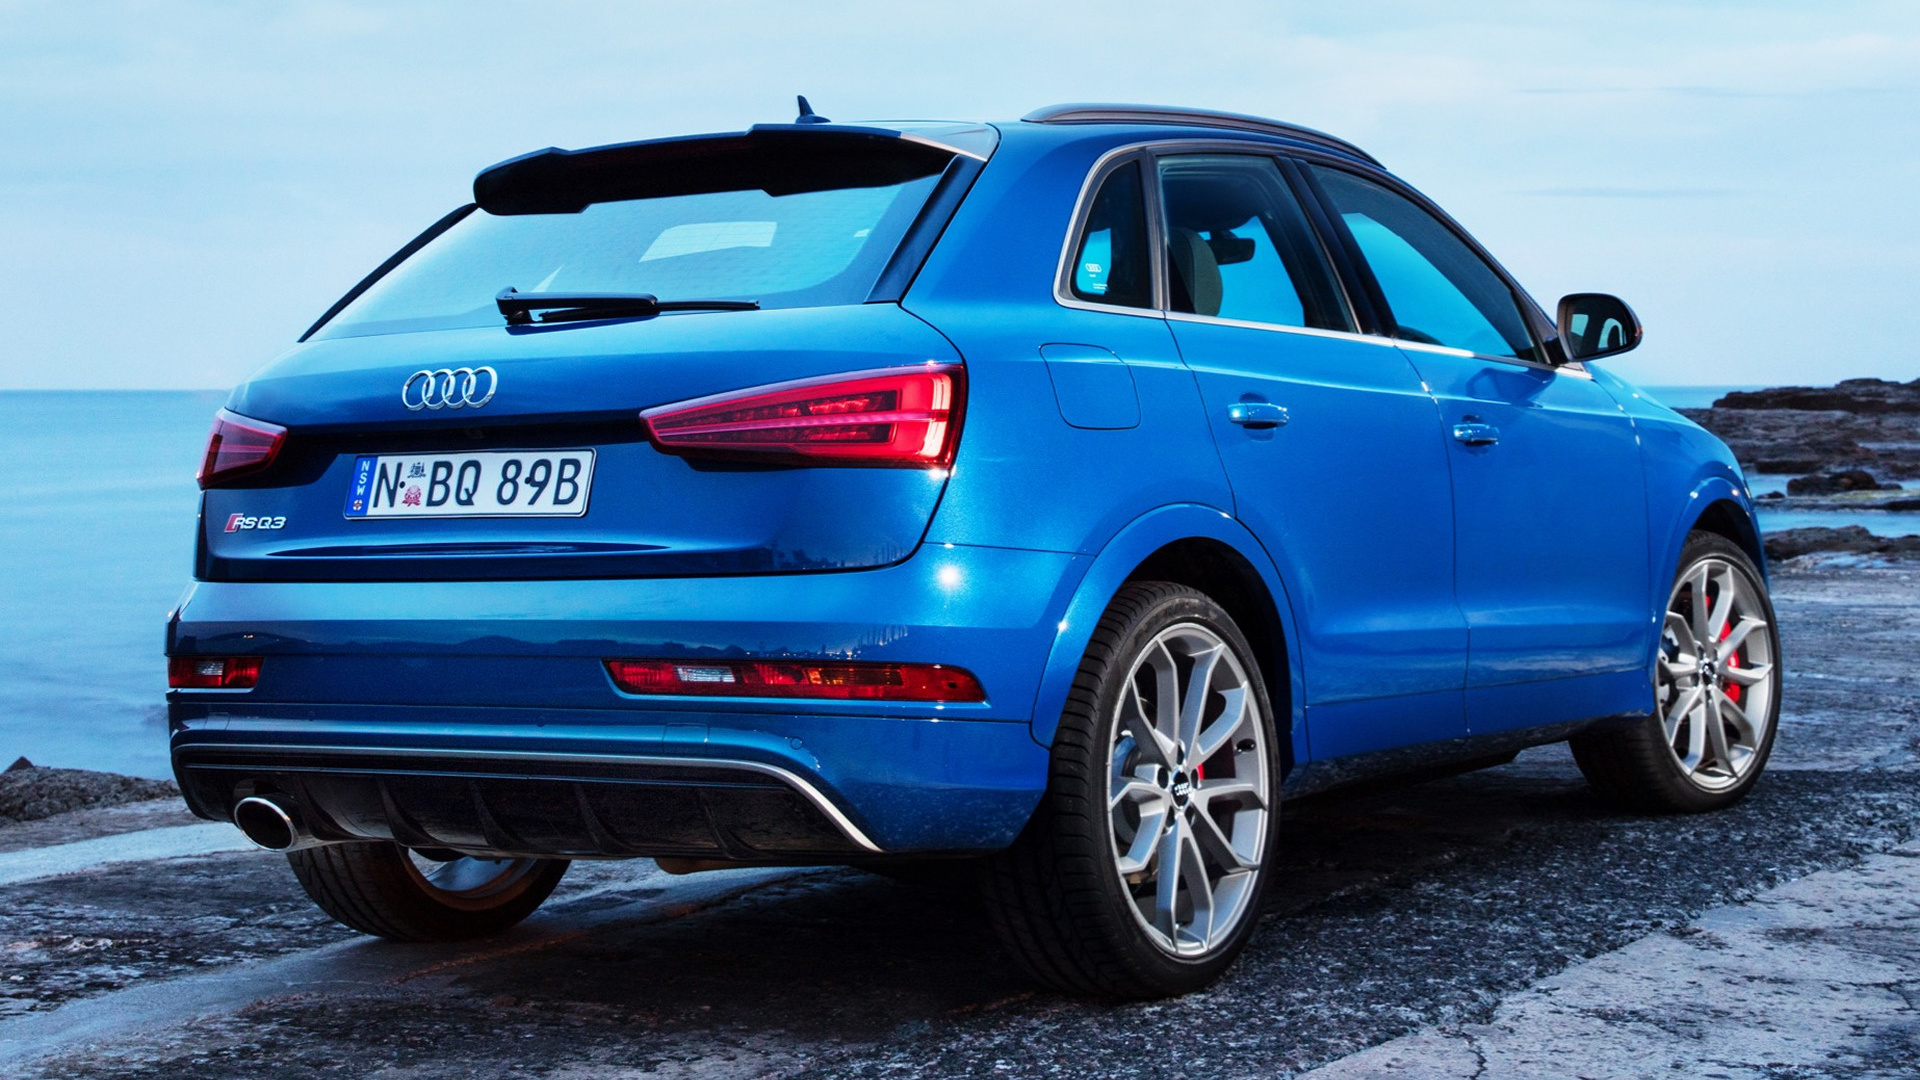 2016 audi rs q3 performance au wallpapers and hd. Black Bedroom Furniture Sets. Home Design Ideas